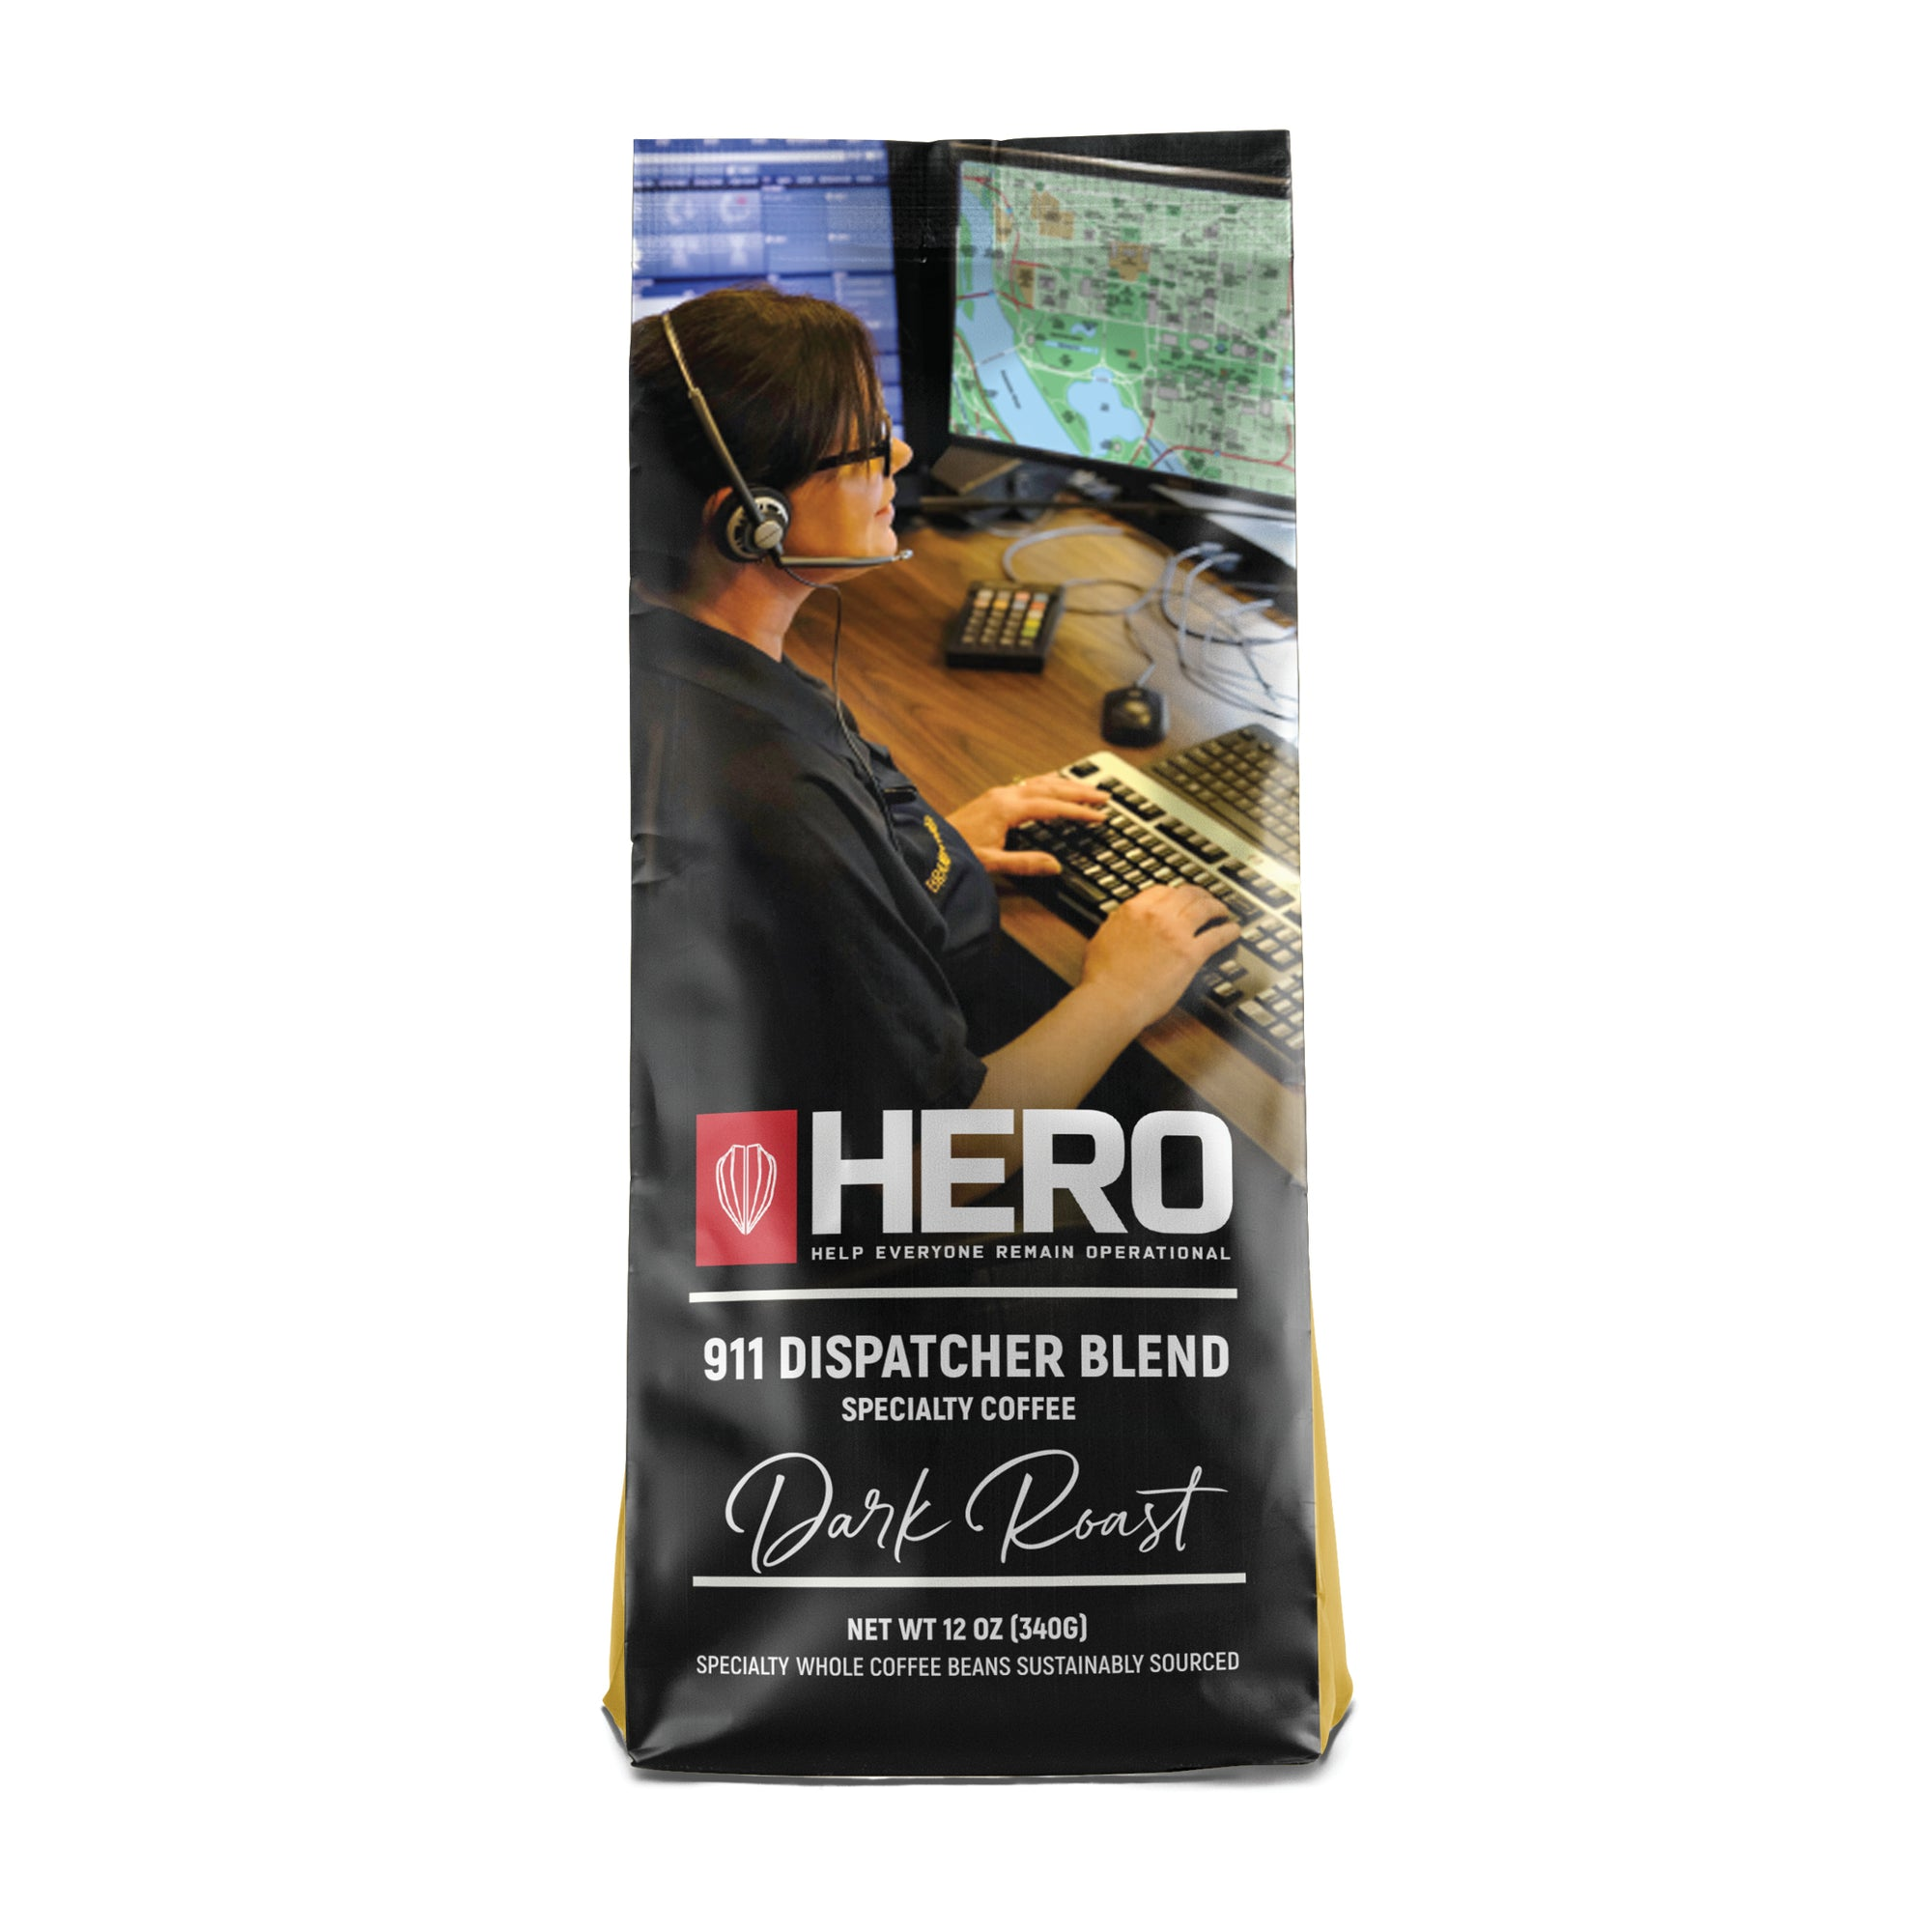 HERO 911 Dispatcher Blend Dark Roast Coffee